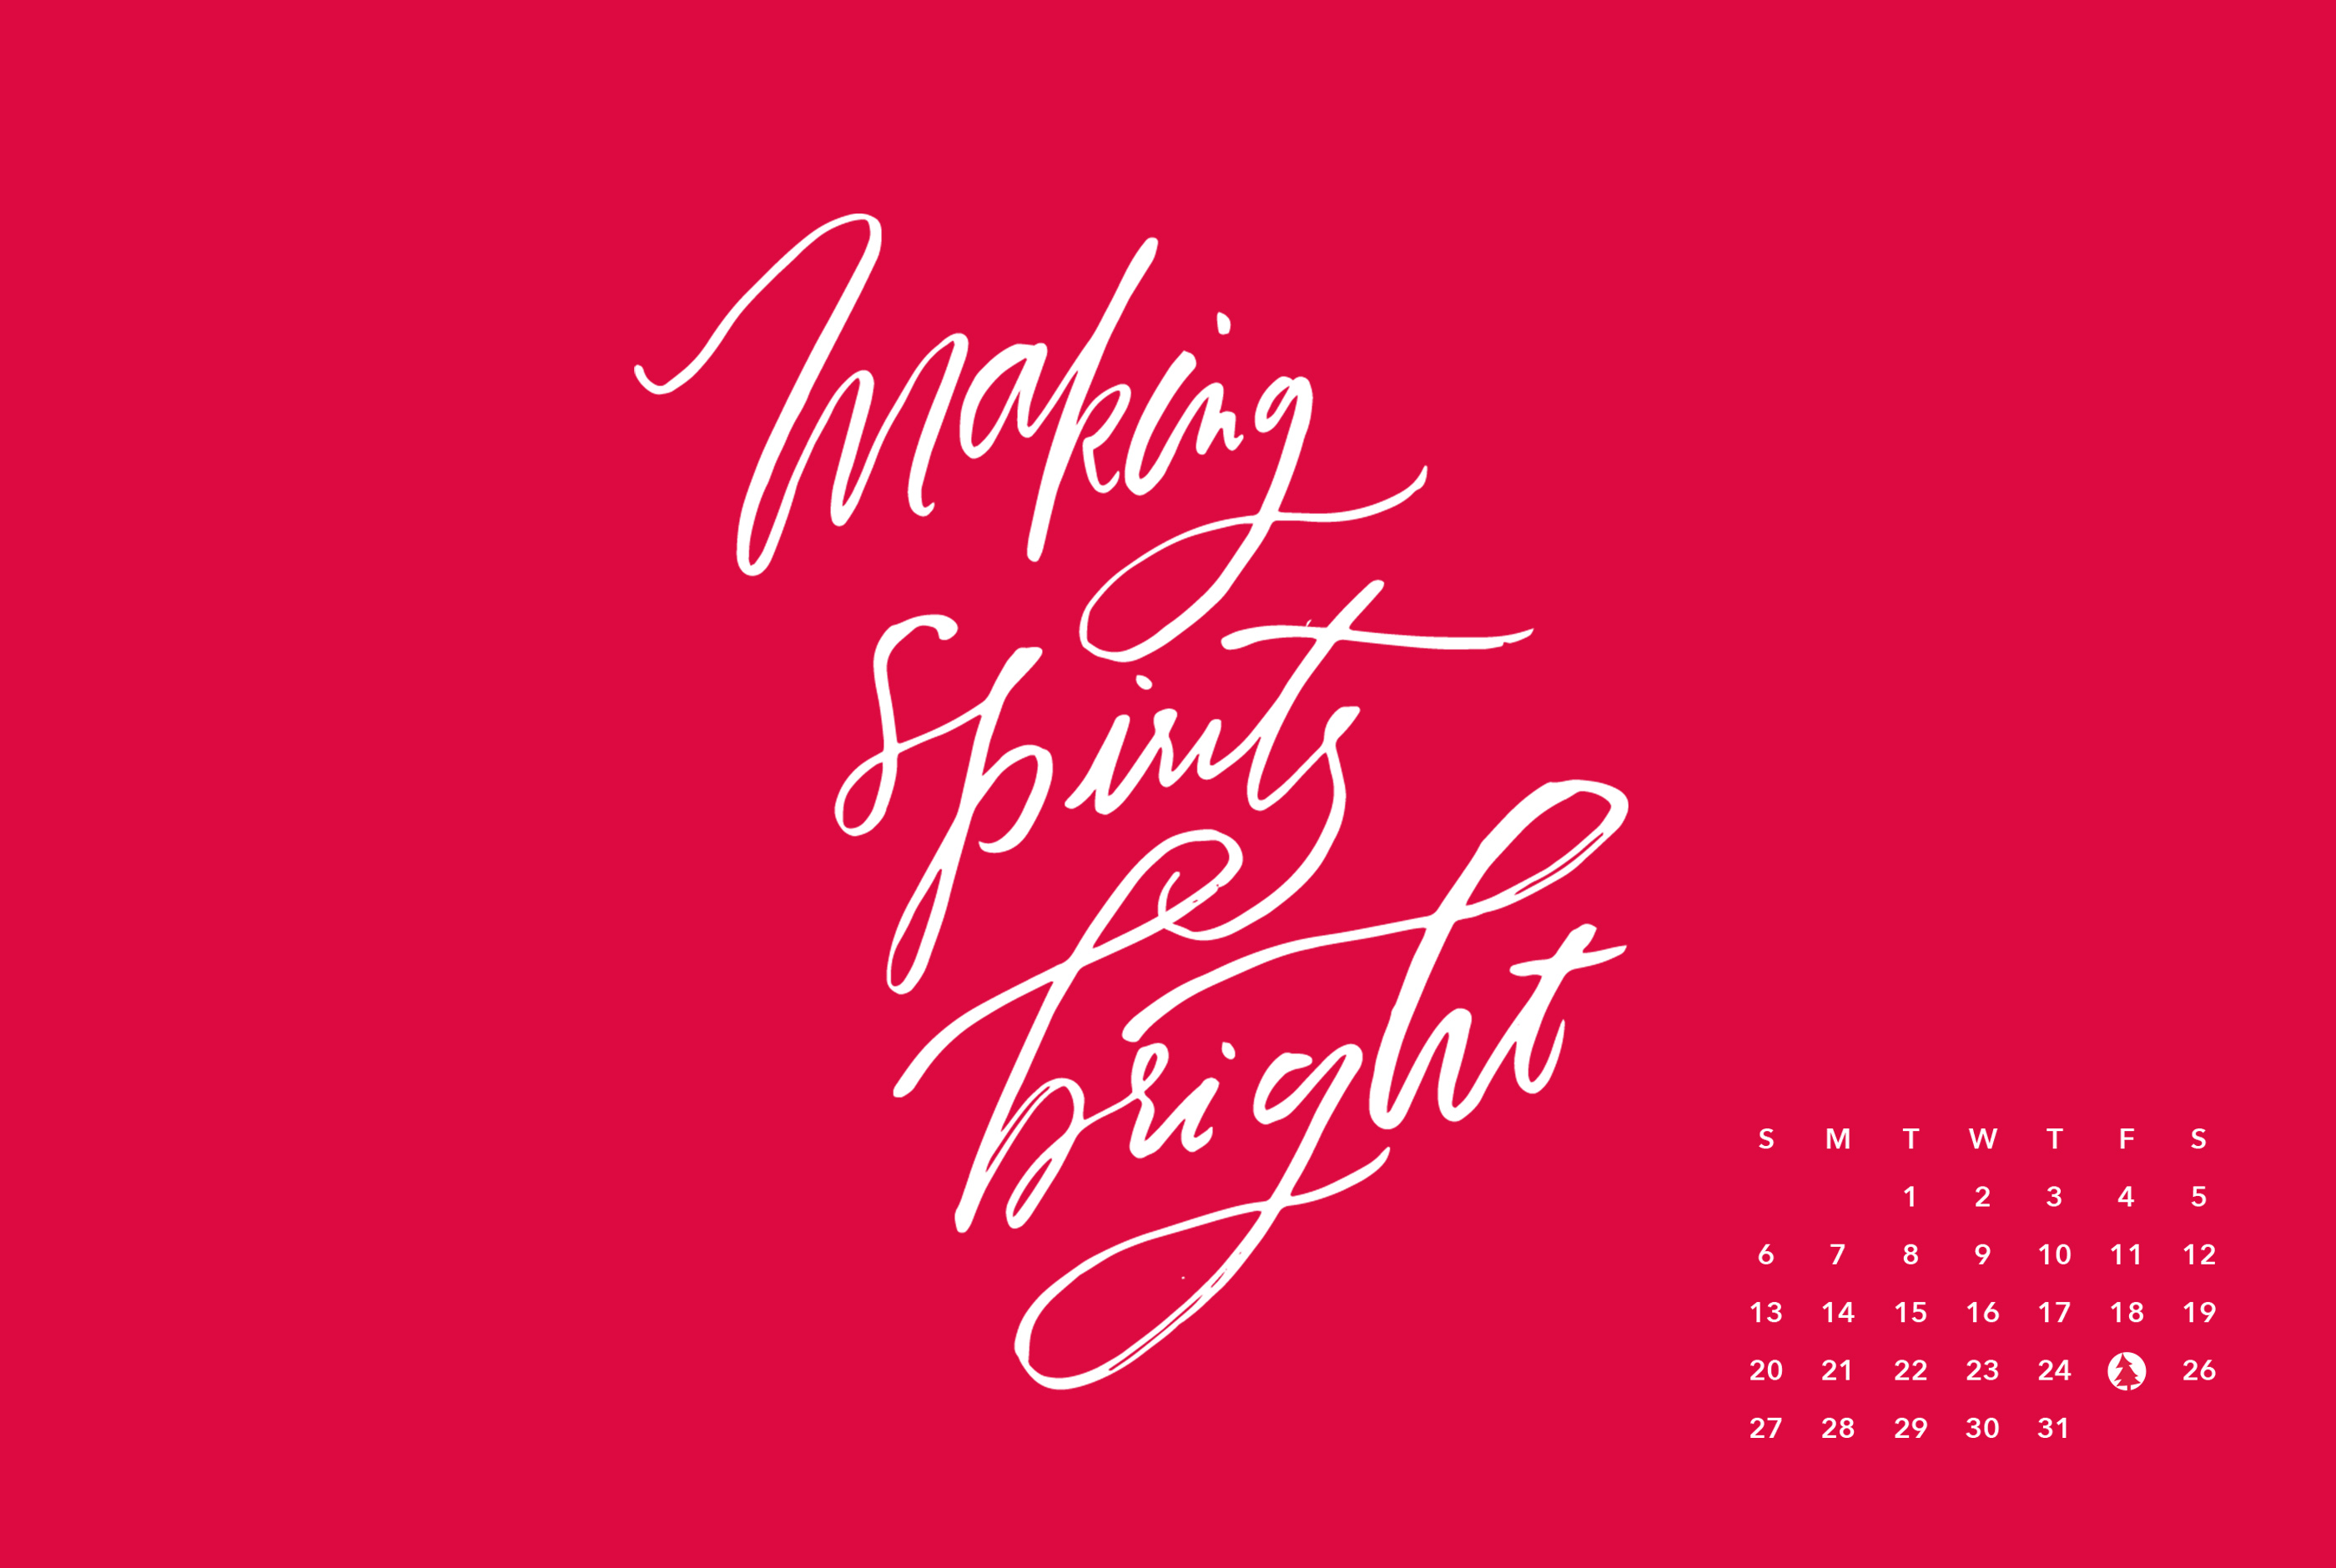 click here to download making spirits bright calendar desktop